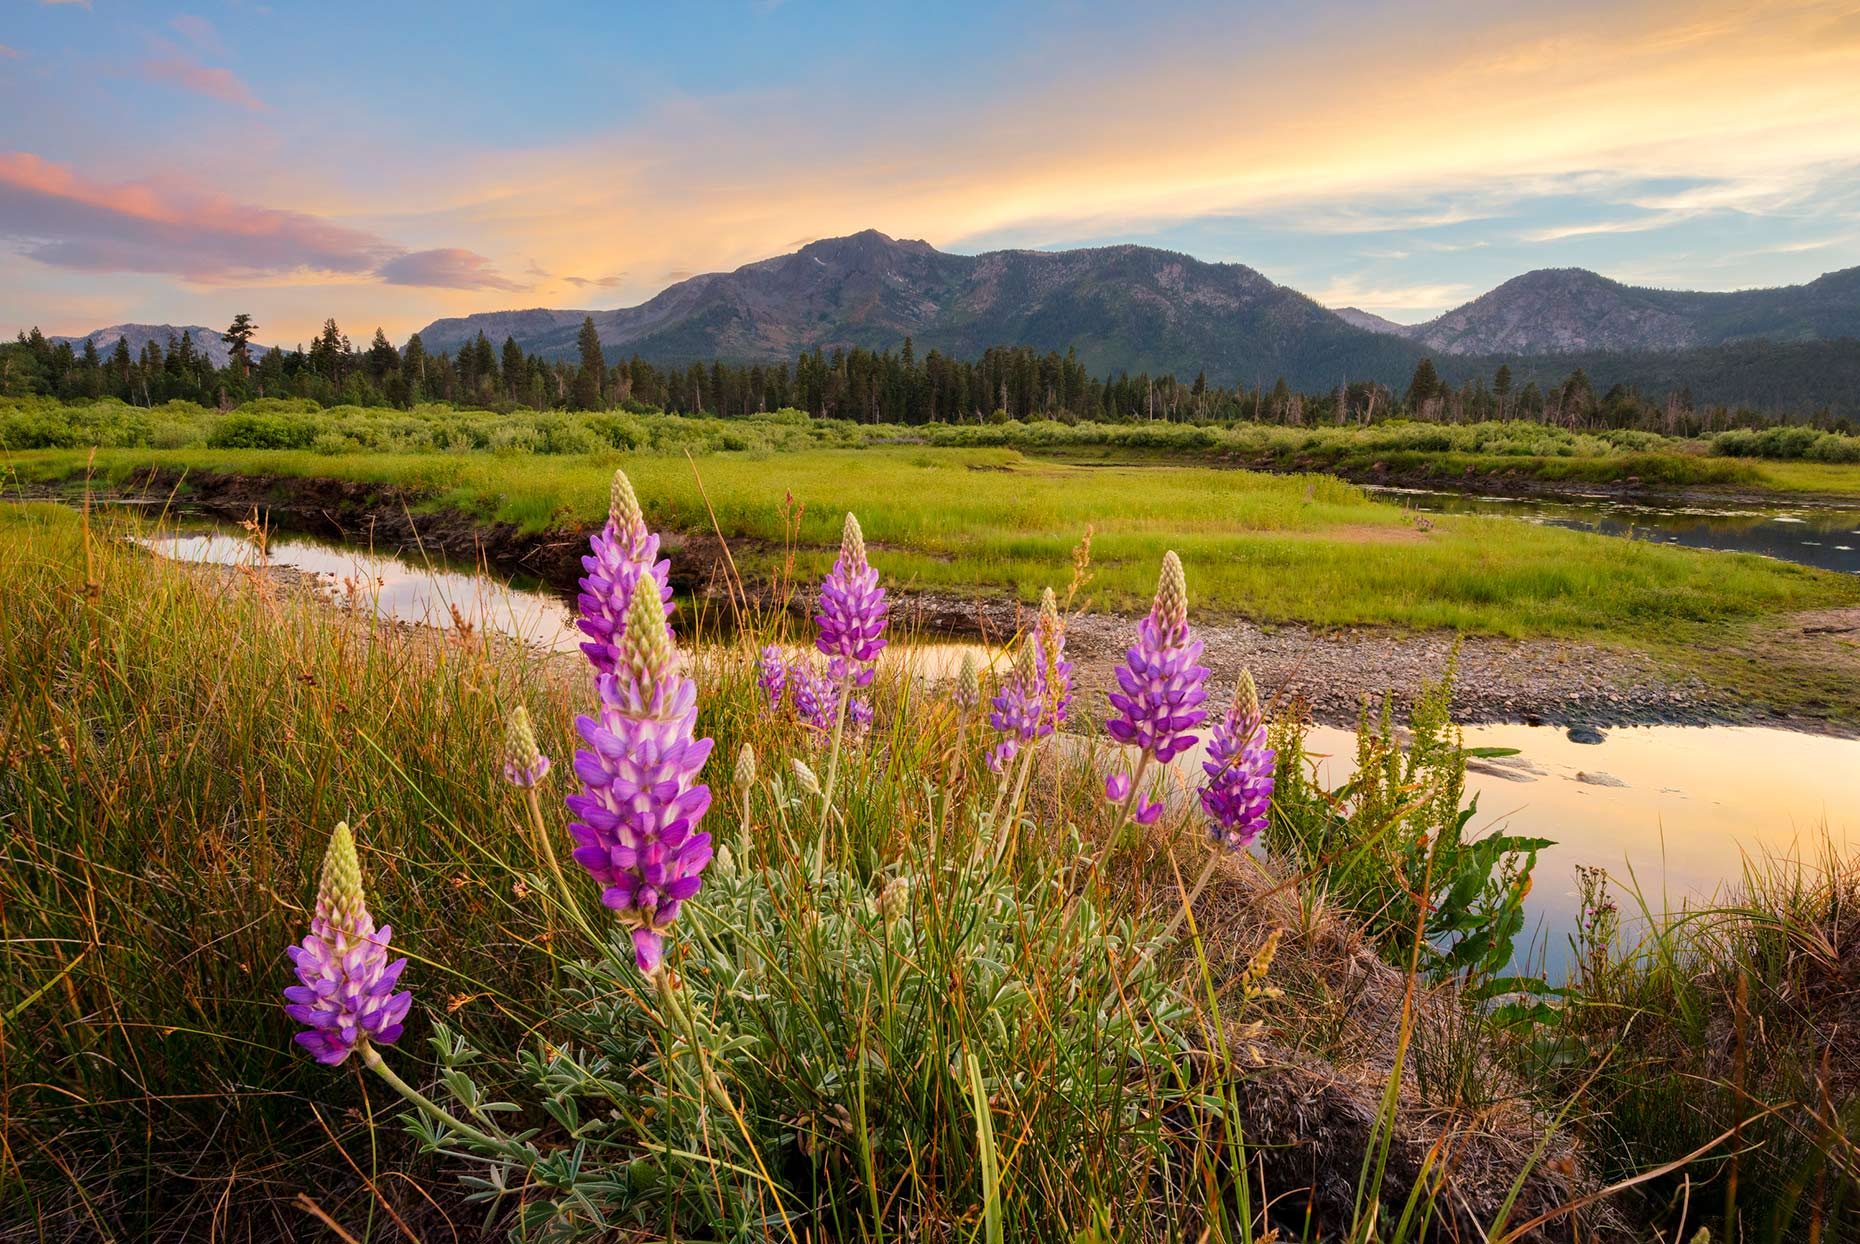 Lupine Wildflower Sunset - South Lake Tahoe, California